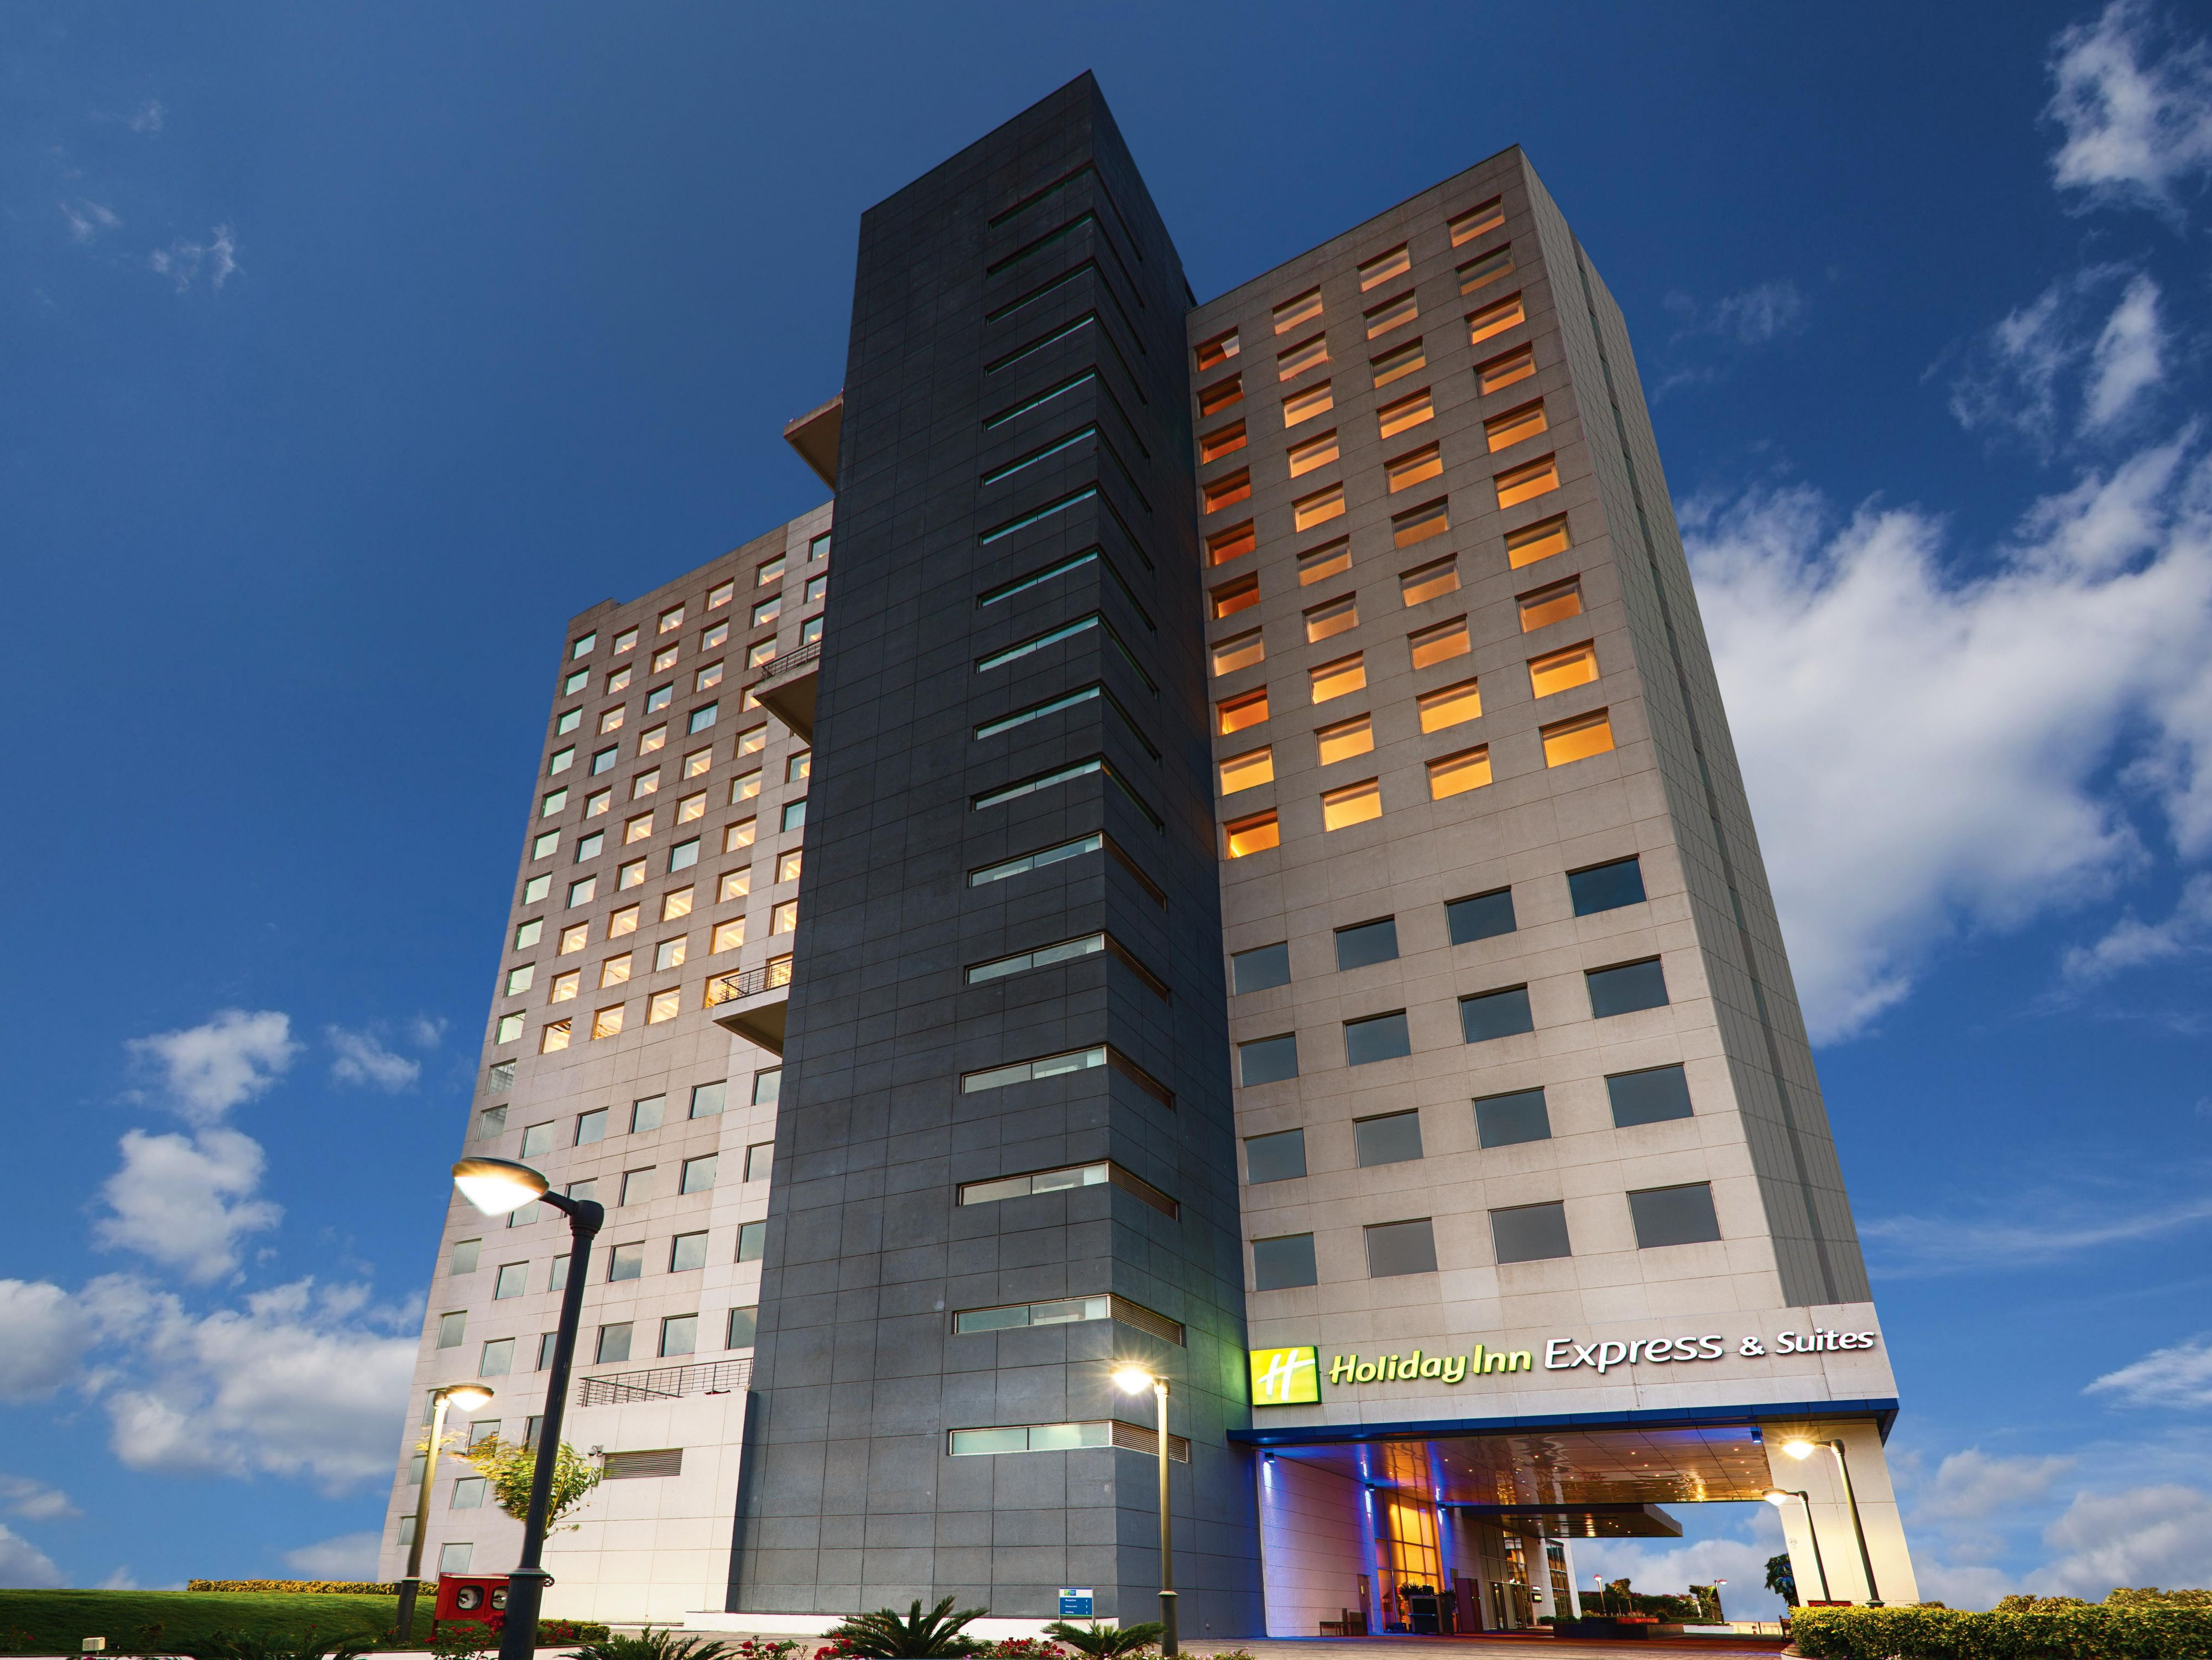 hyderabad hotel image browse info on hyderabad hotel